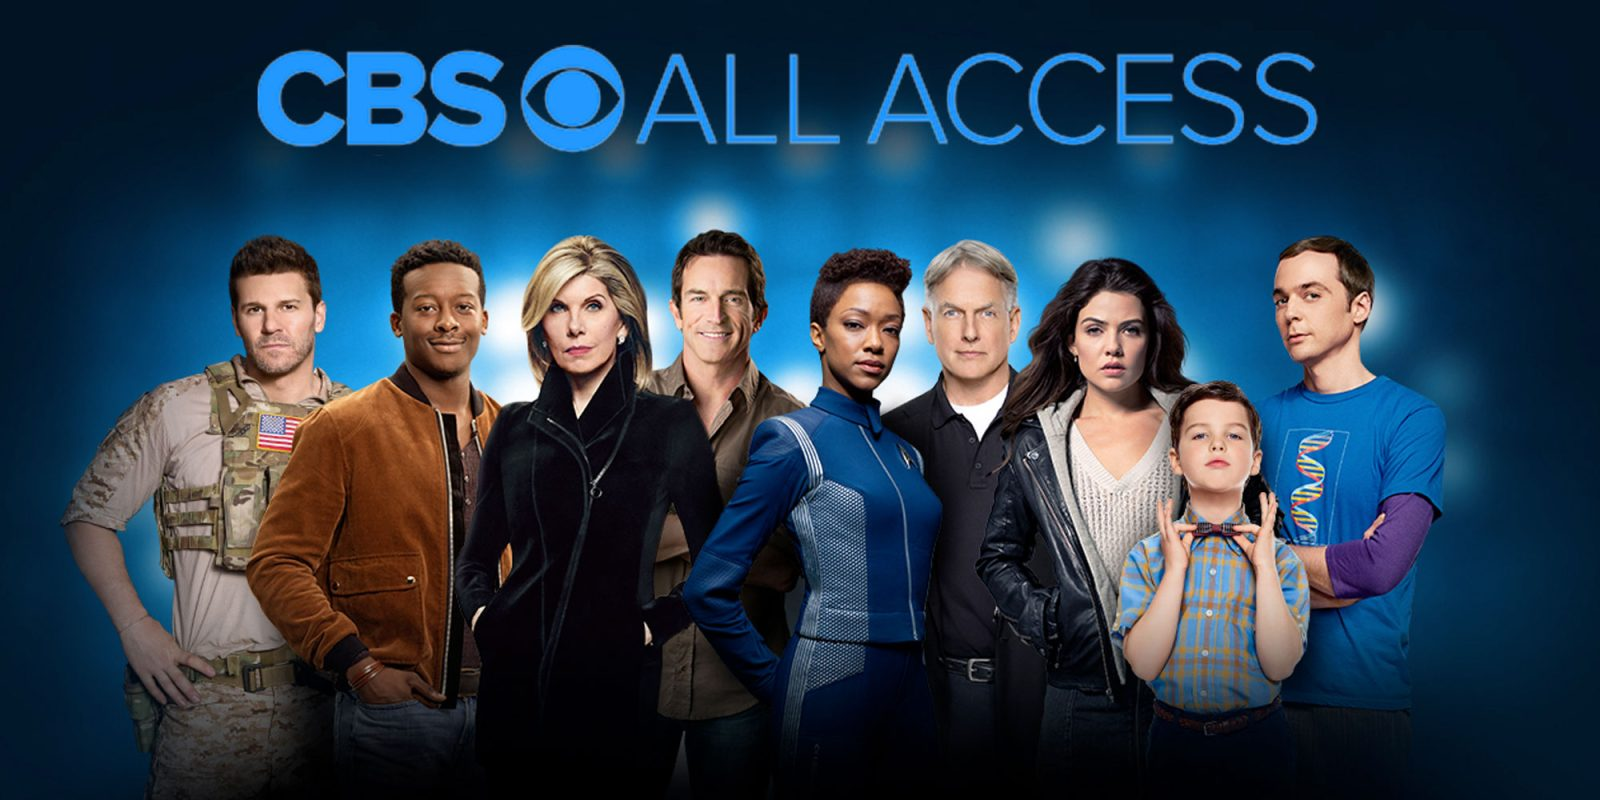 Score a month of CBS All Access for FREE when you use this promo code